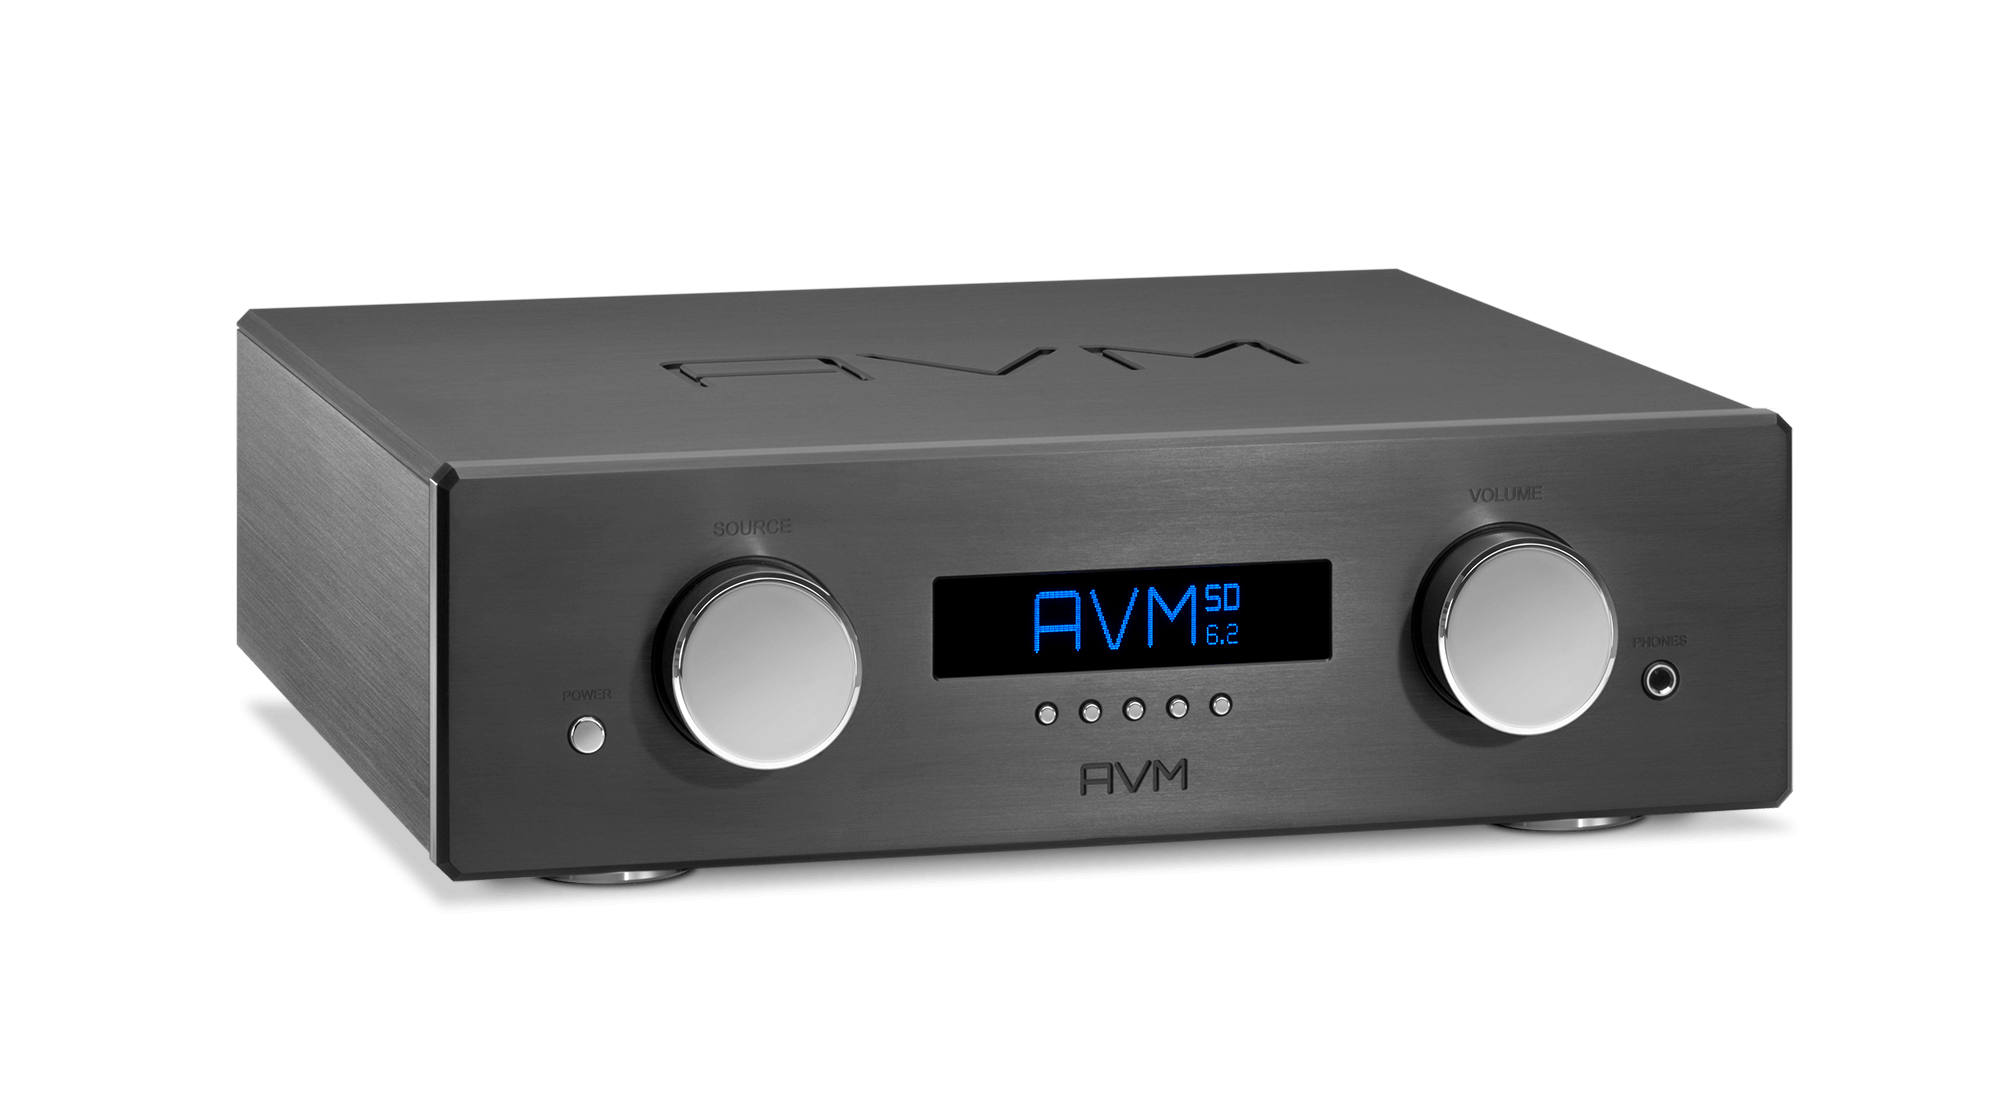 AVM SD 6.2 Black